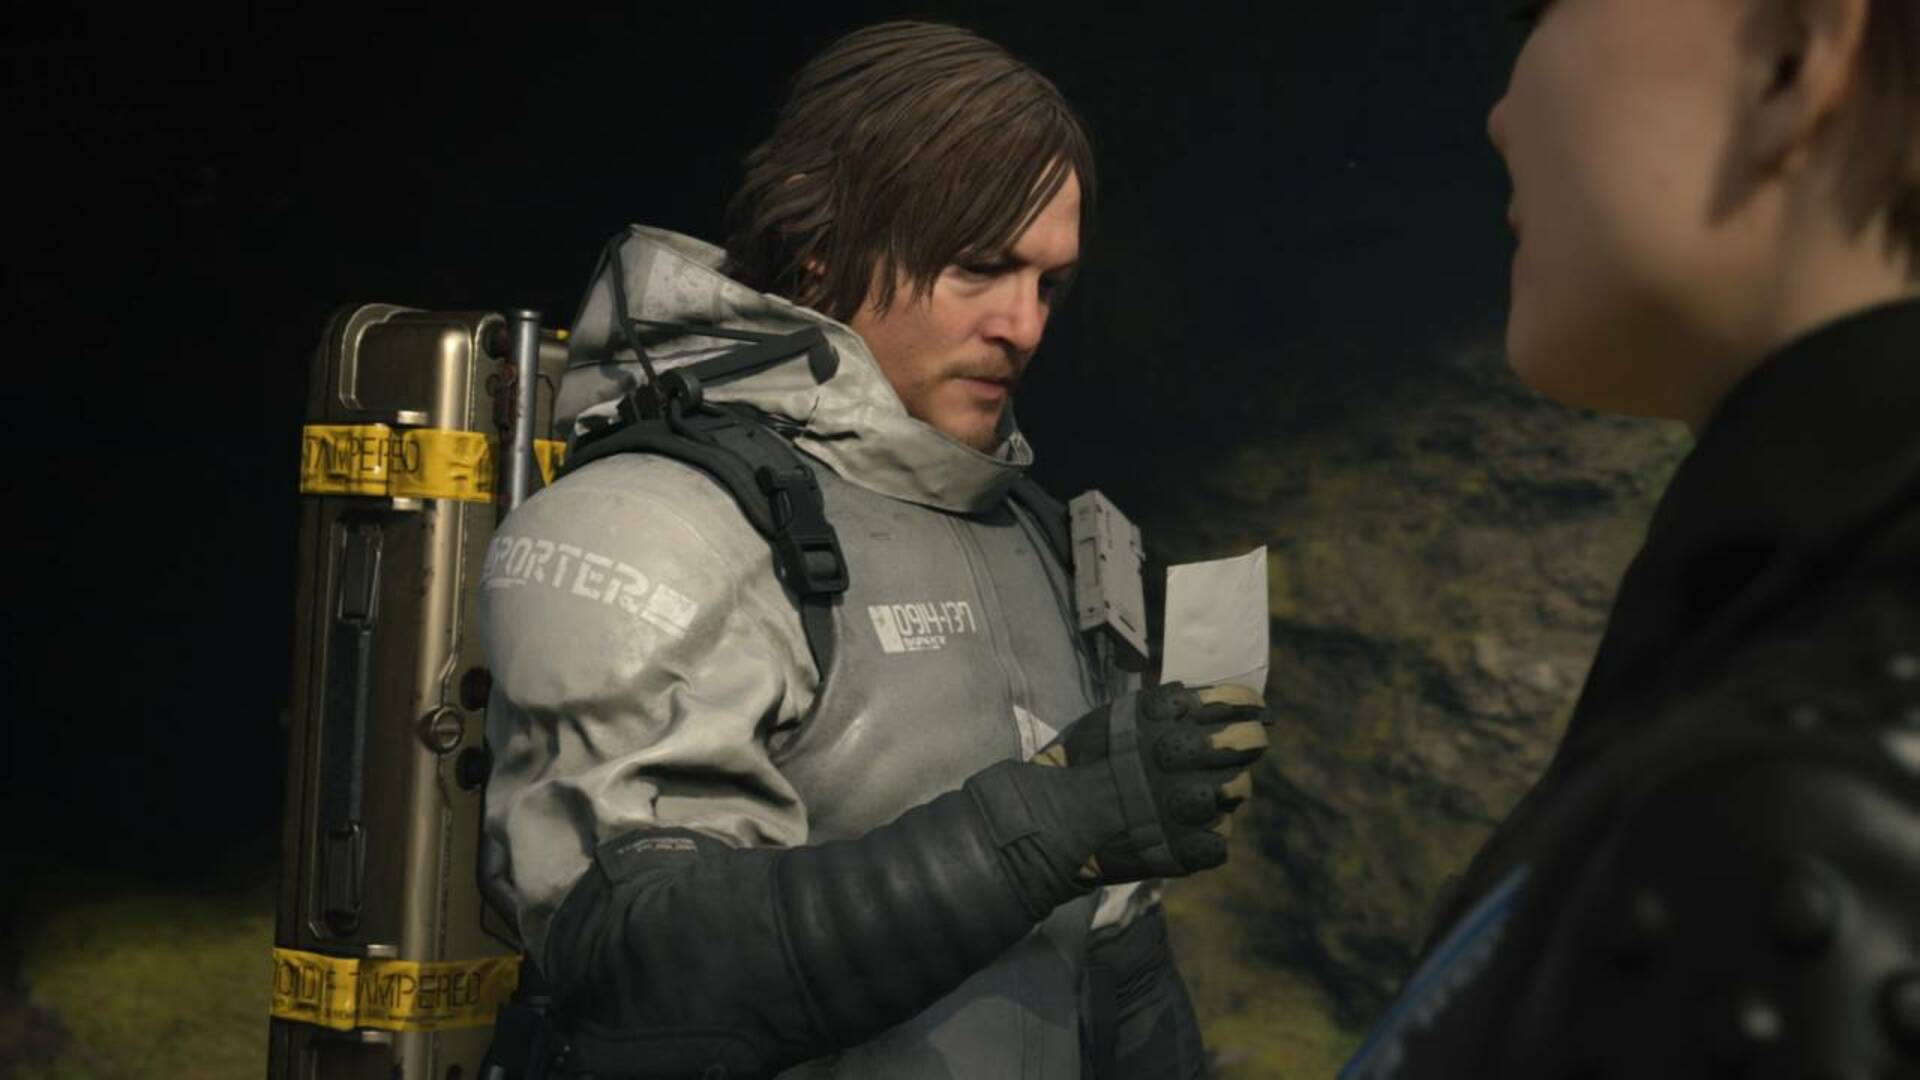 More Death Stranding Details Emerge From Trailer, Site, and Kojima Himself